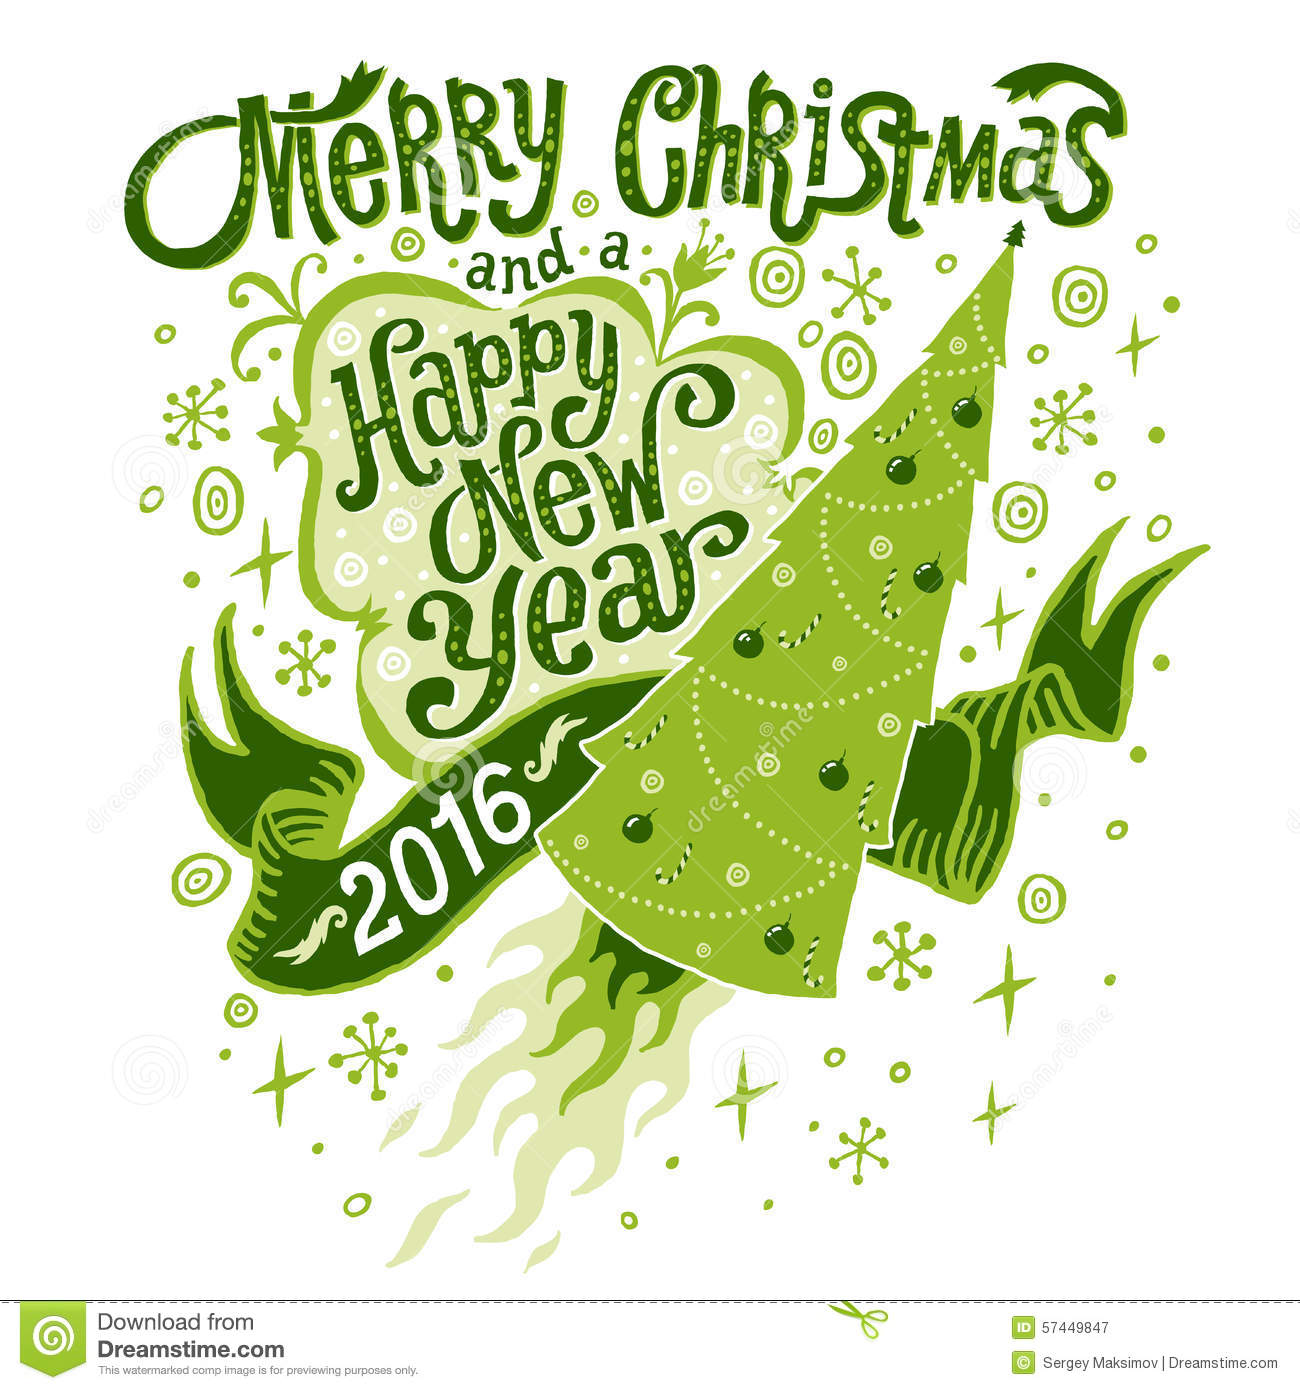 Christmas 2015 happy new year 2016 clipart.